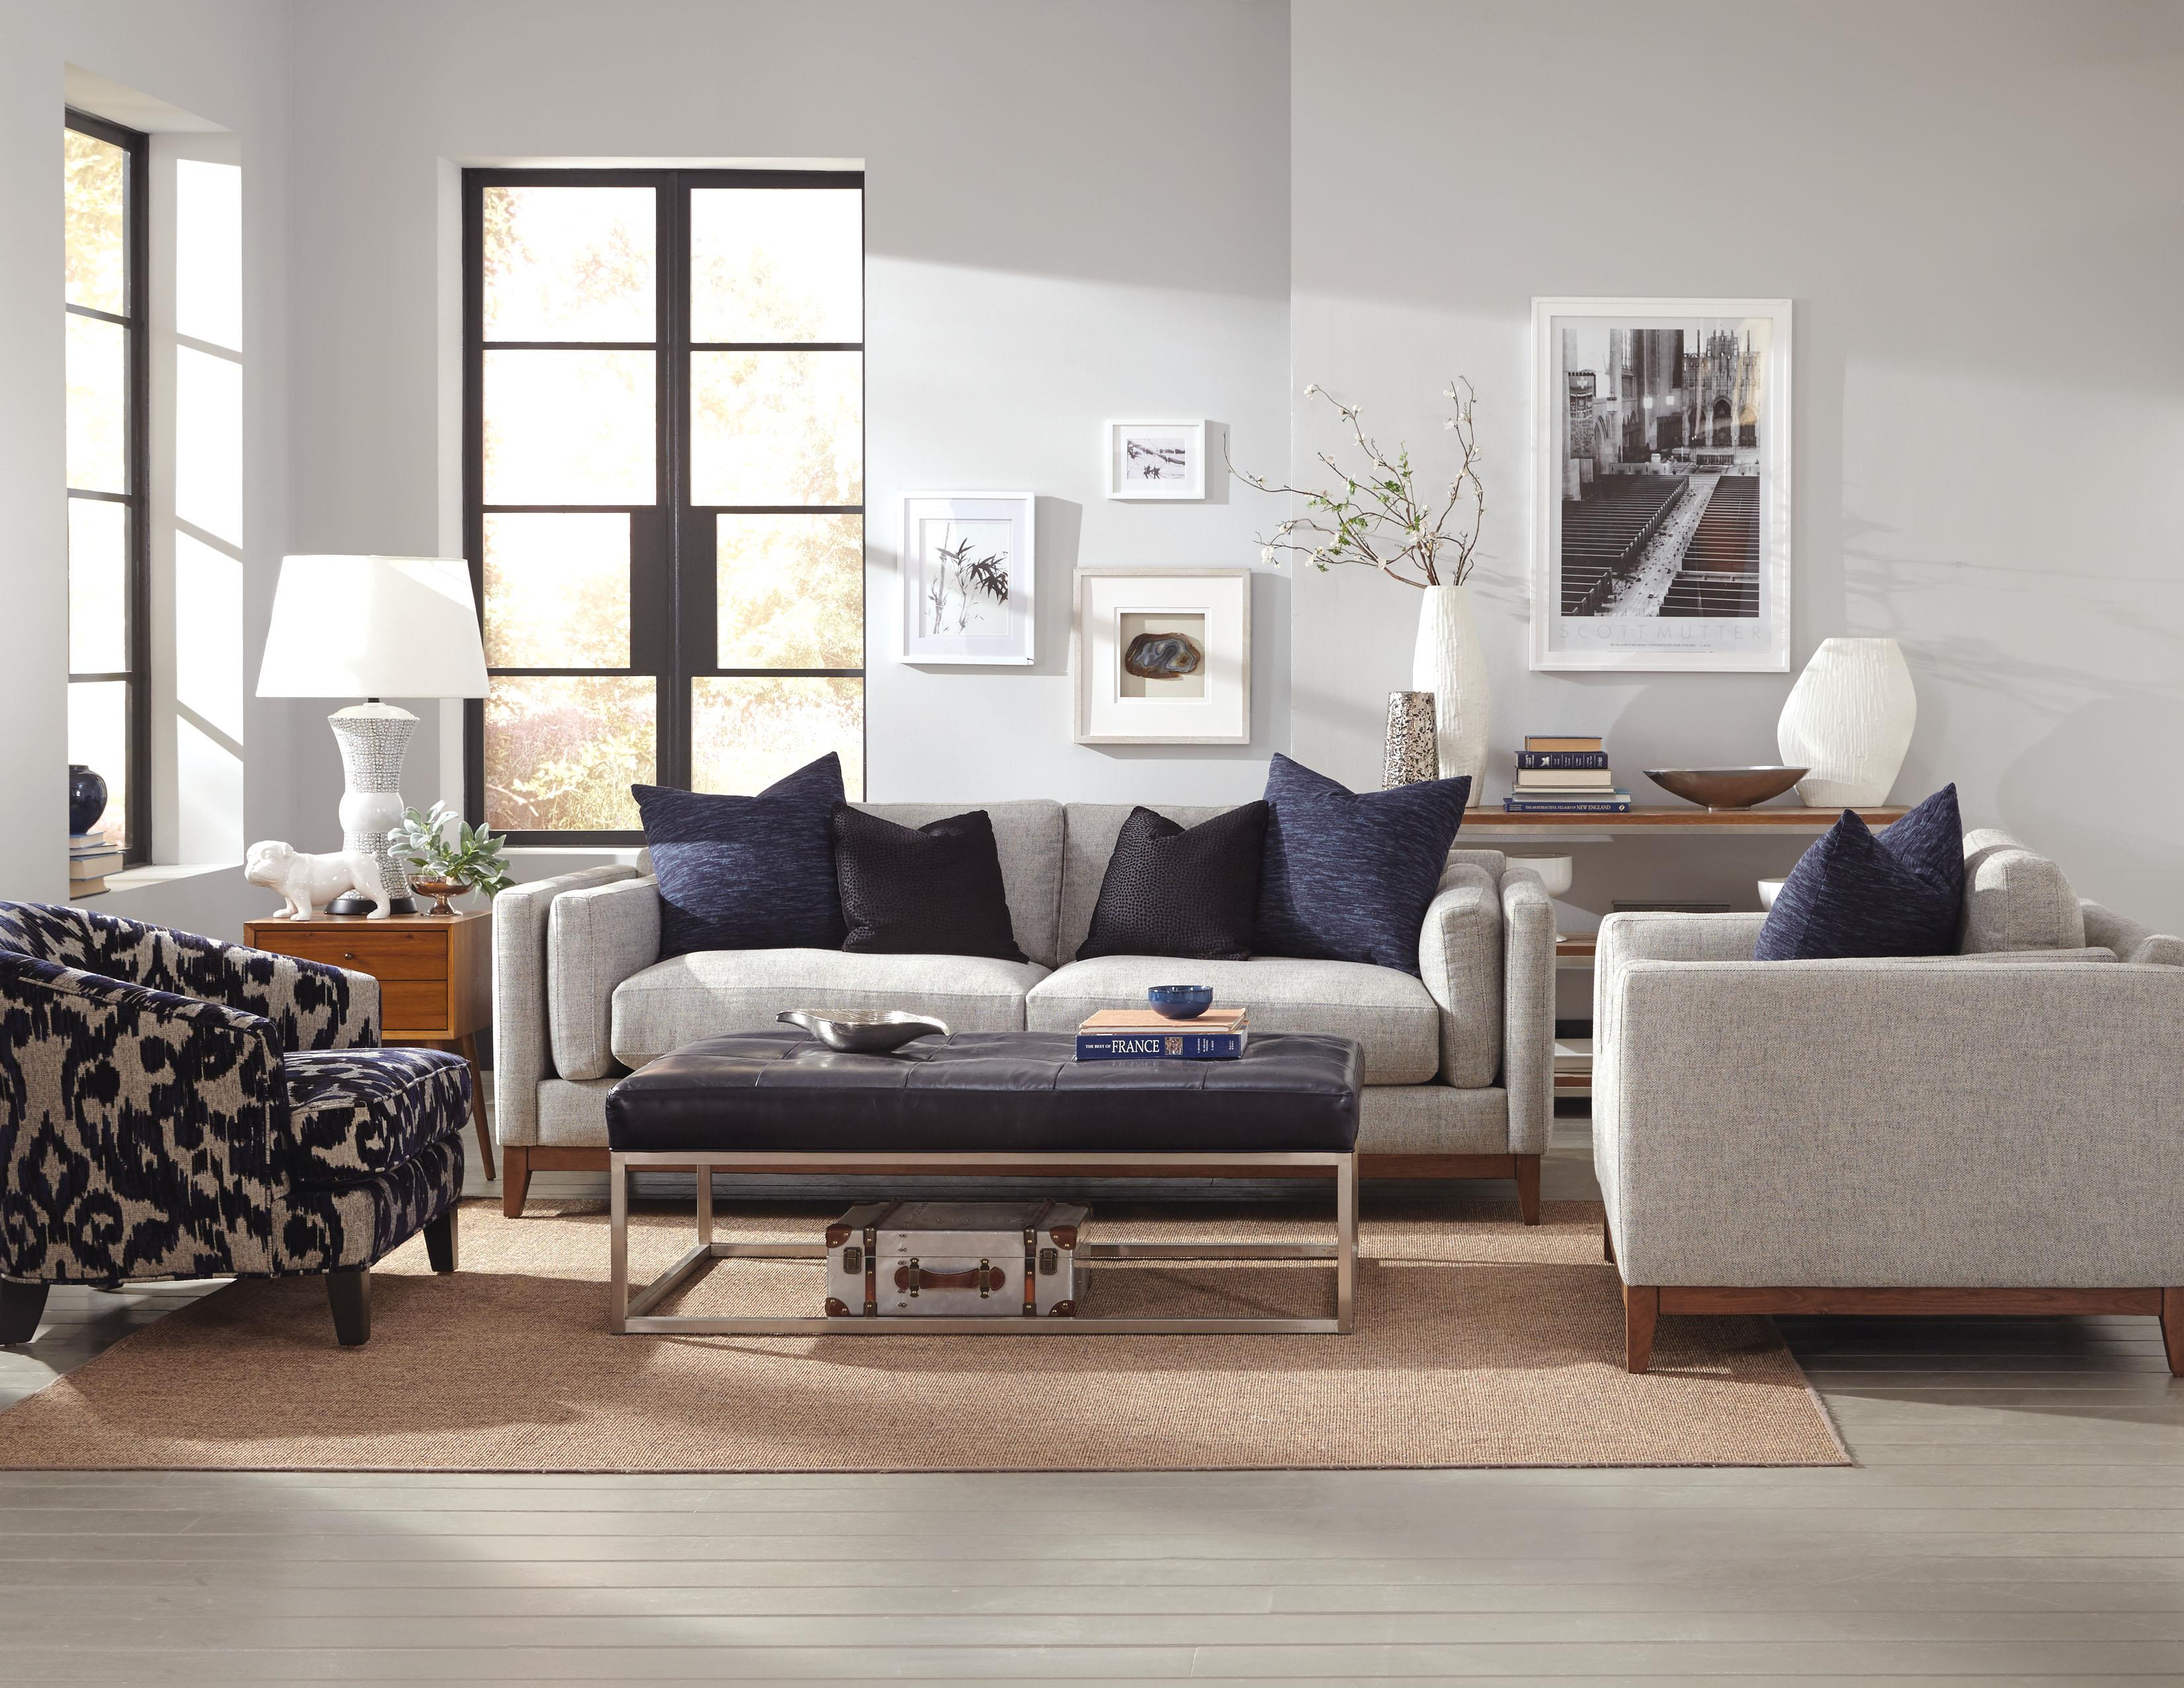 Beau Kelsey (347) By Jonathan Louis   HomeWorld Furniture   Jonathan Louis  Kelsey Dealer